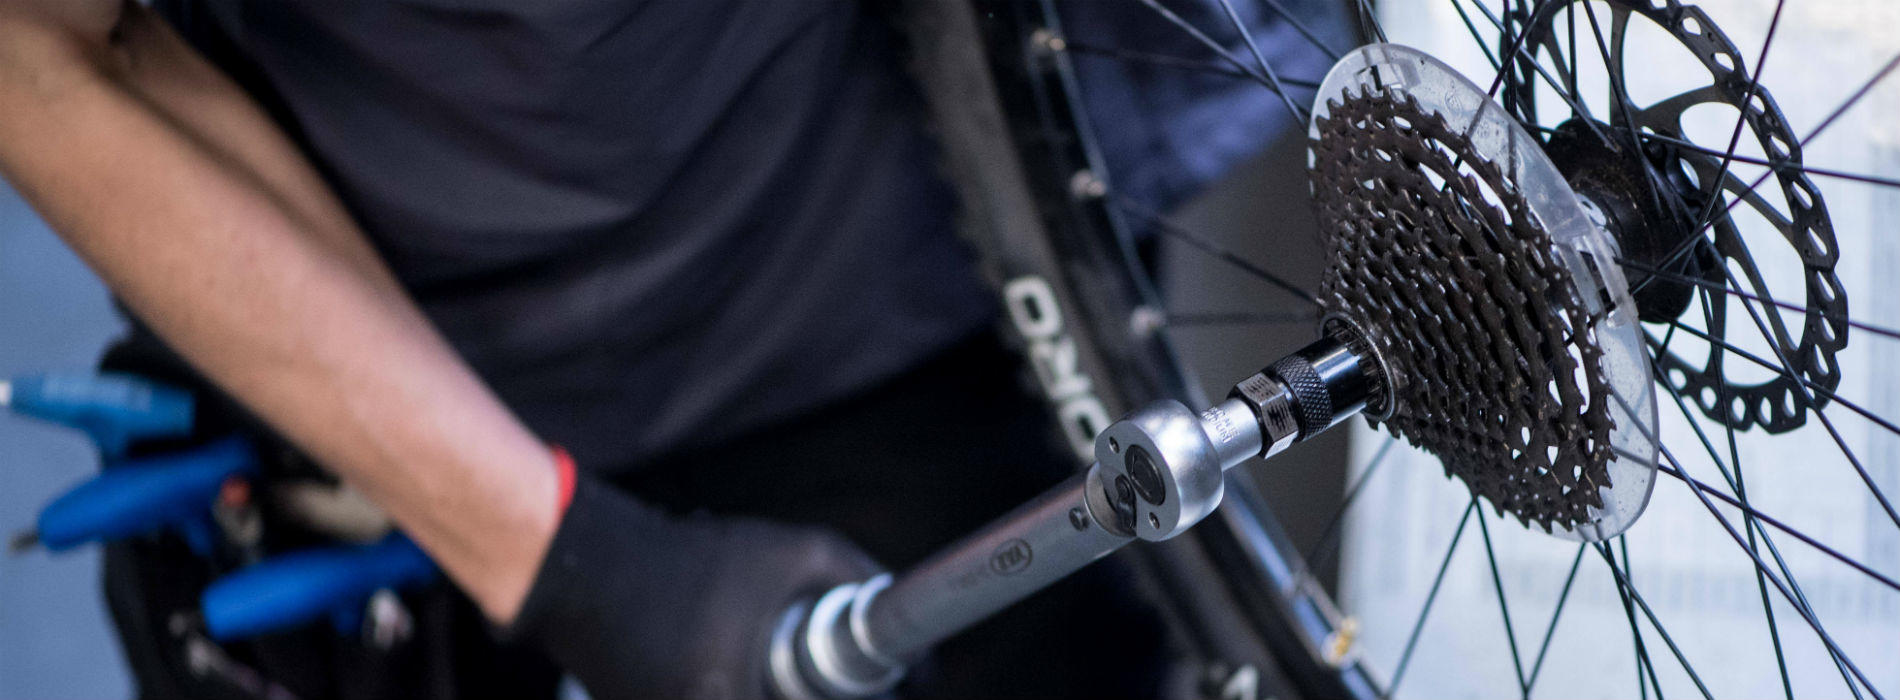 How To Choose Your Cassette or Freewheel?